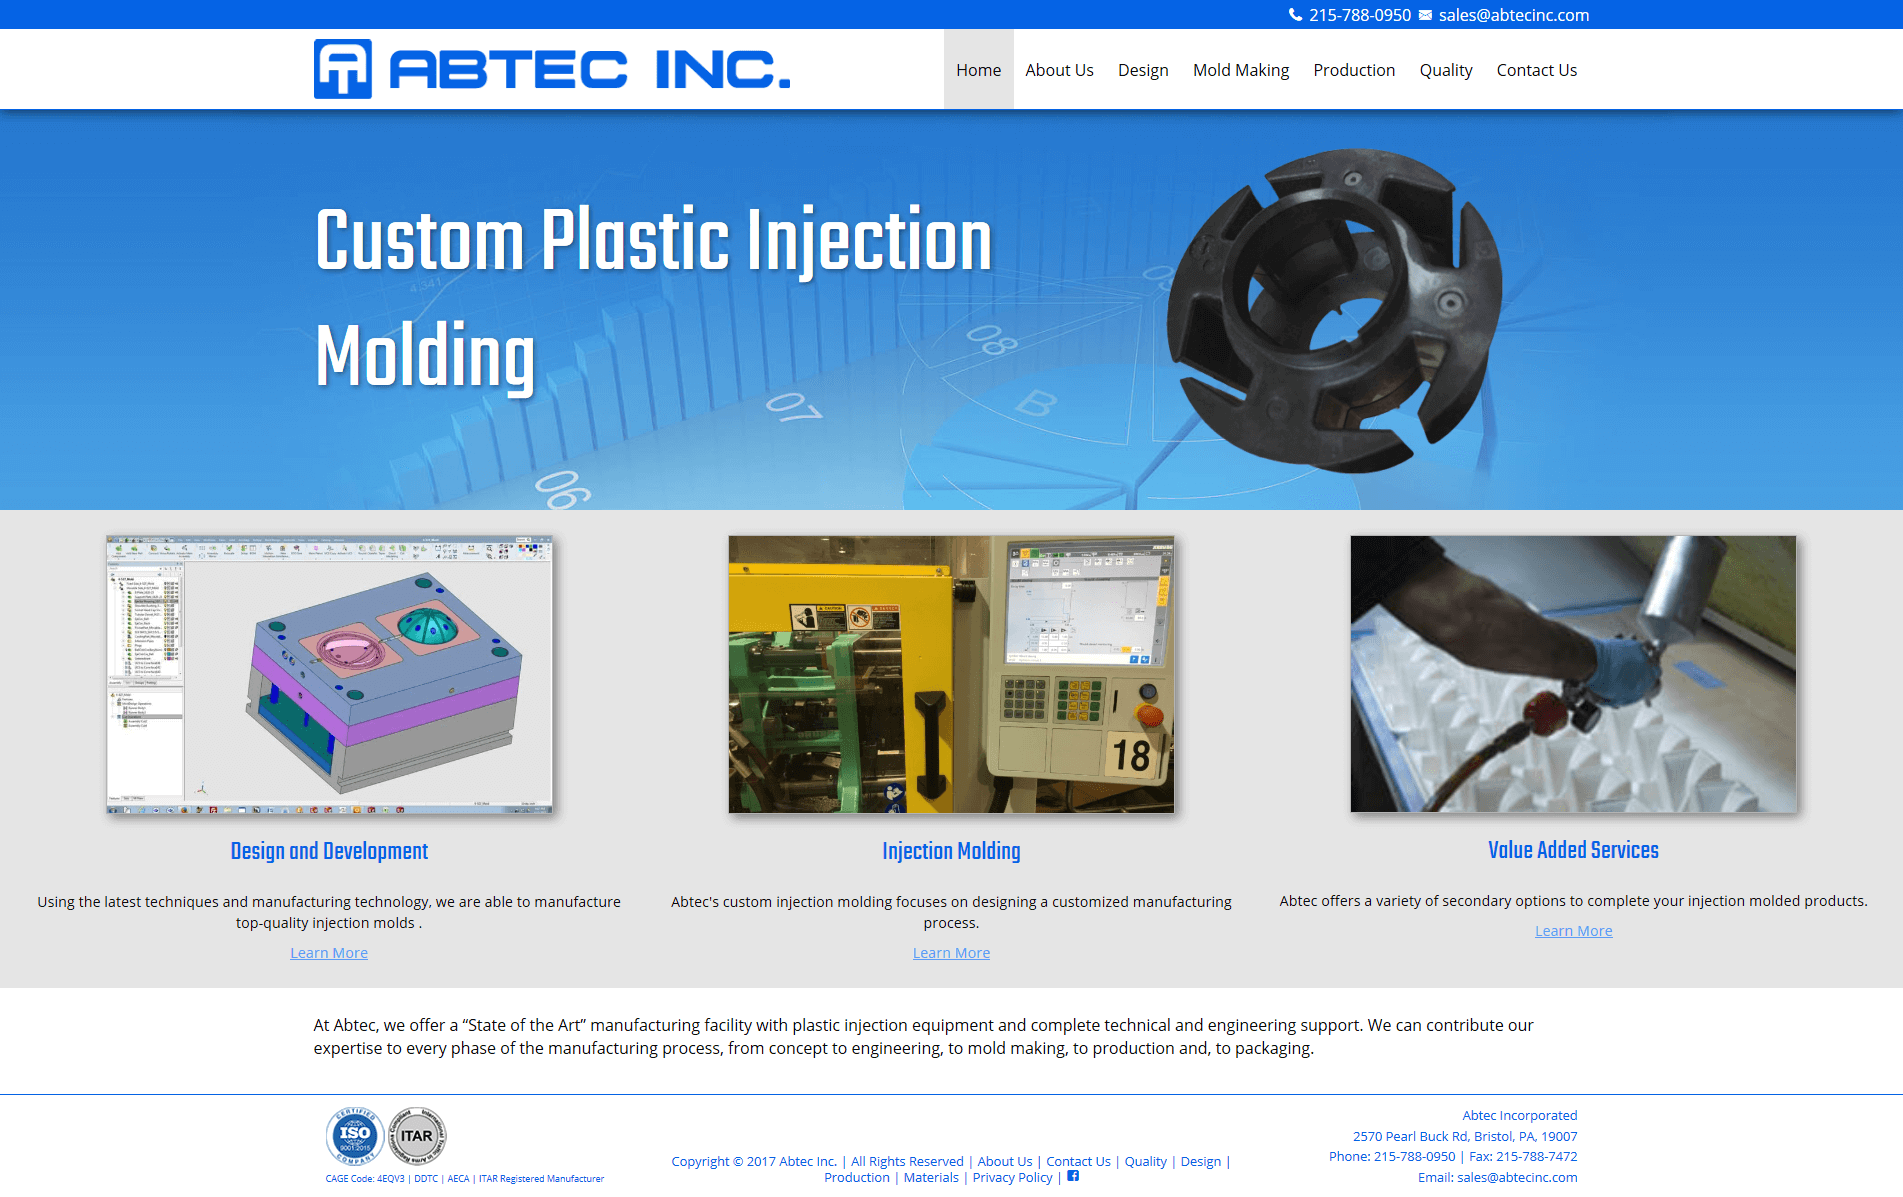 Abtec Inc Website Screenshot